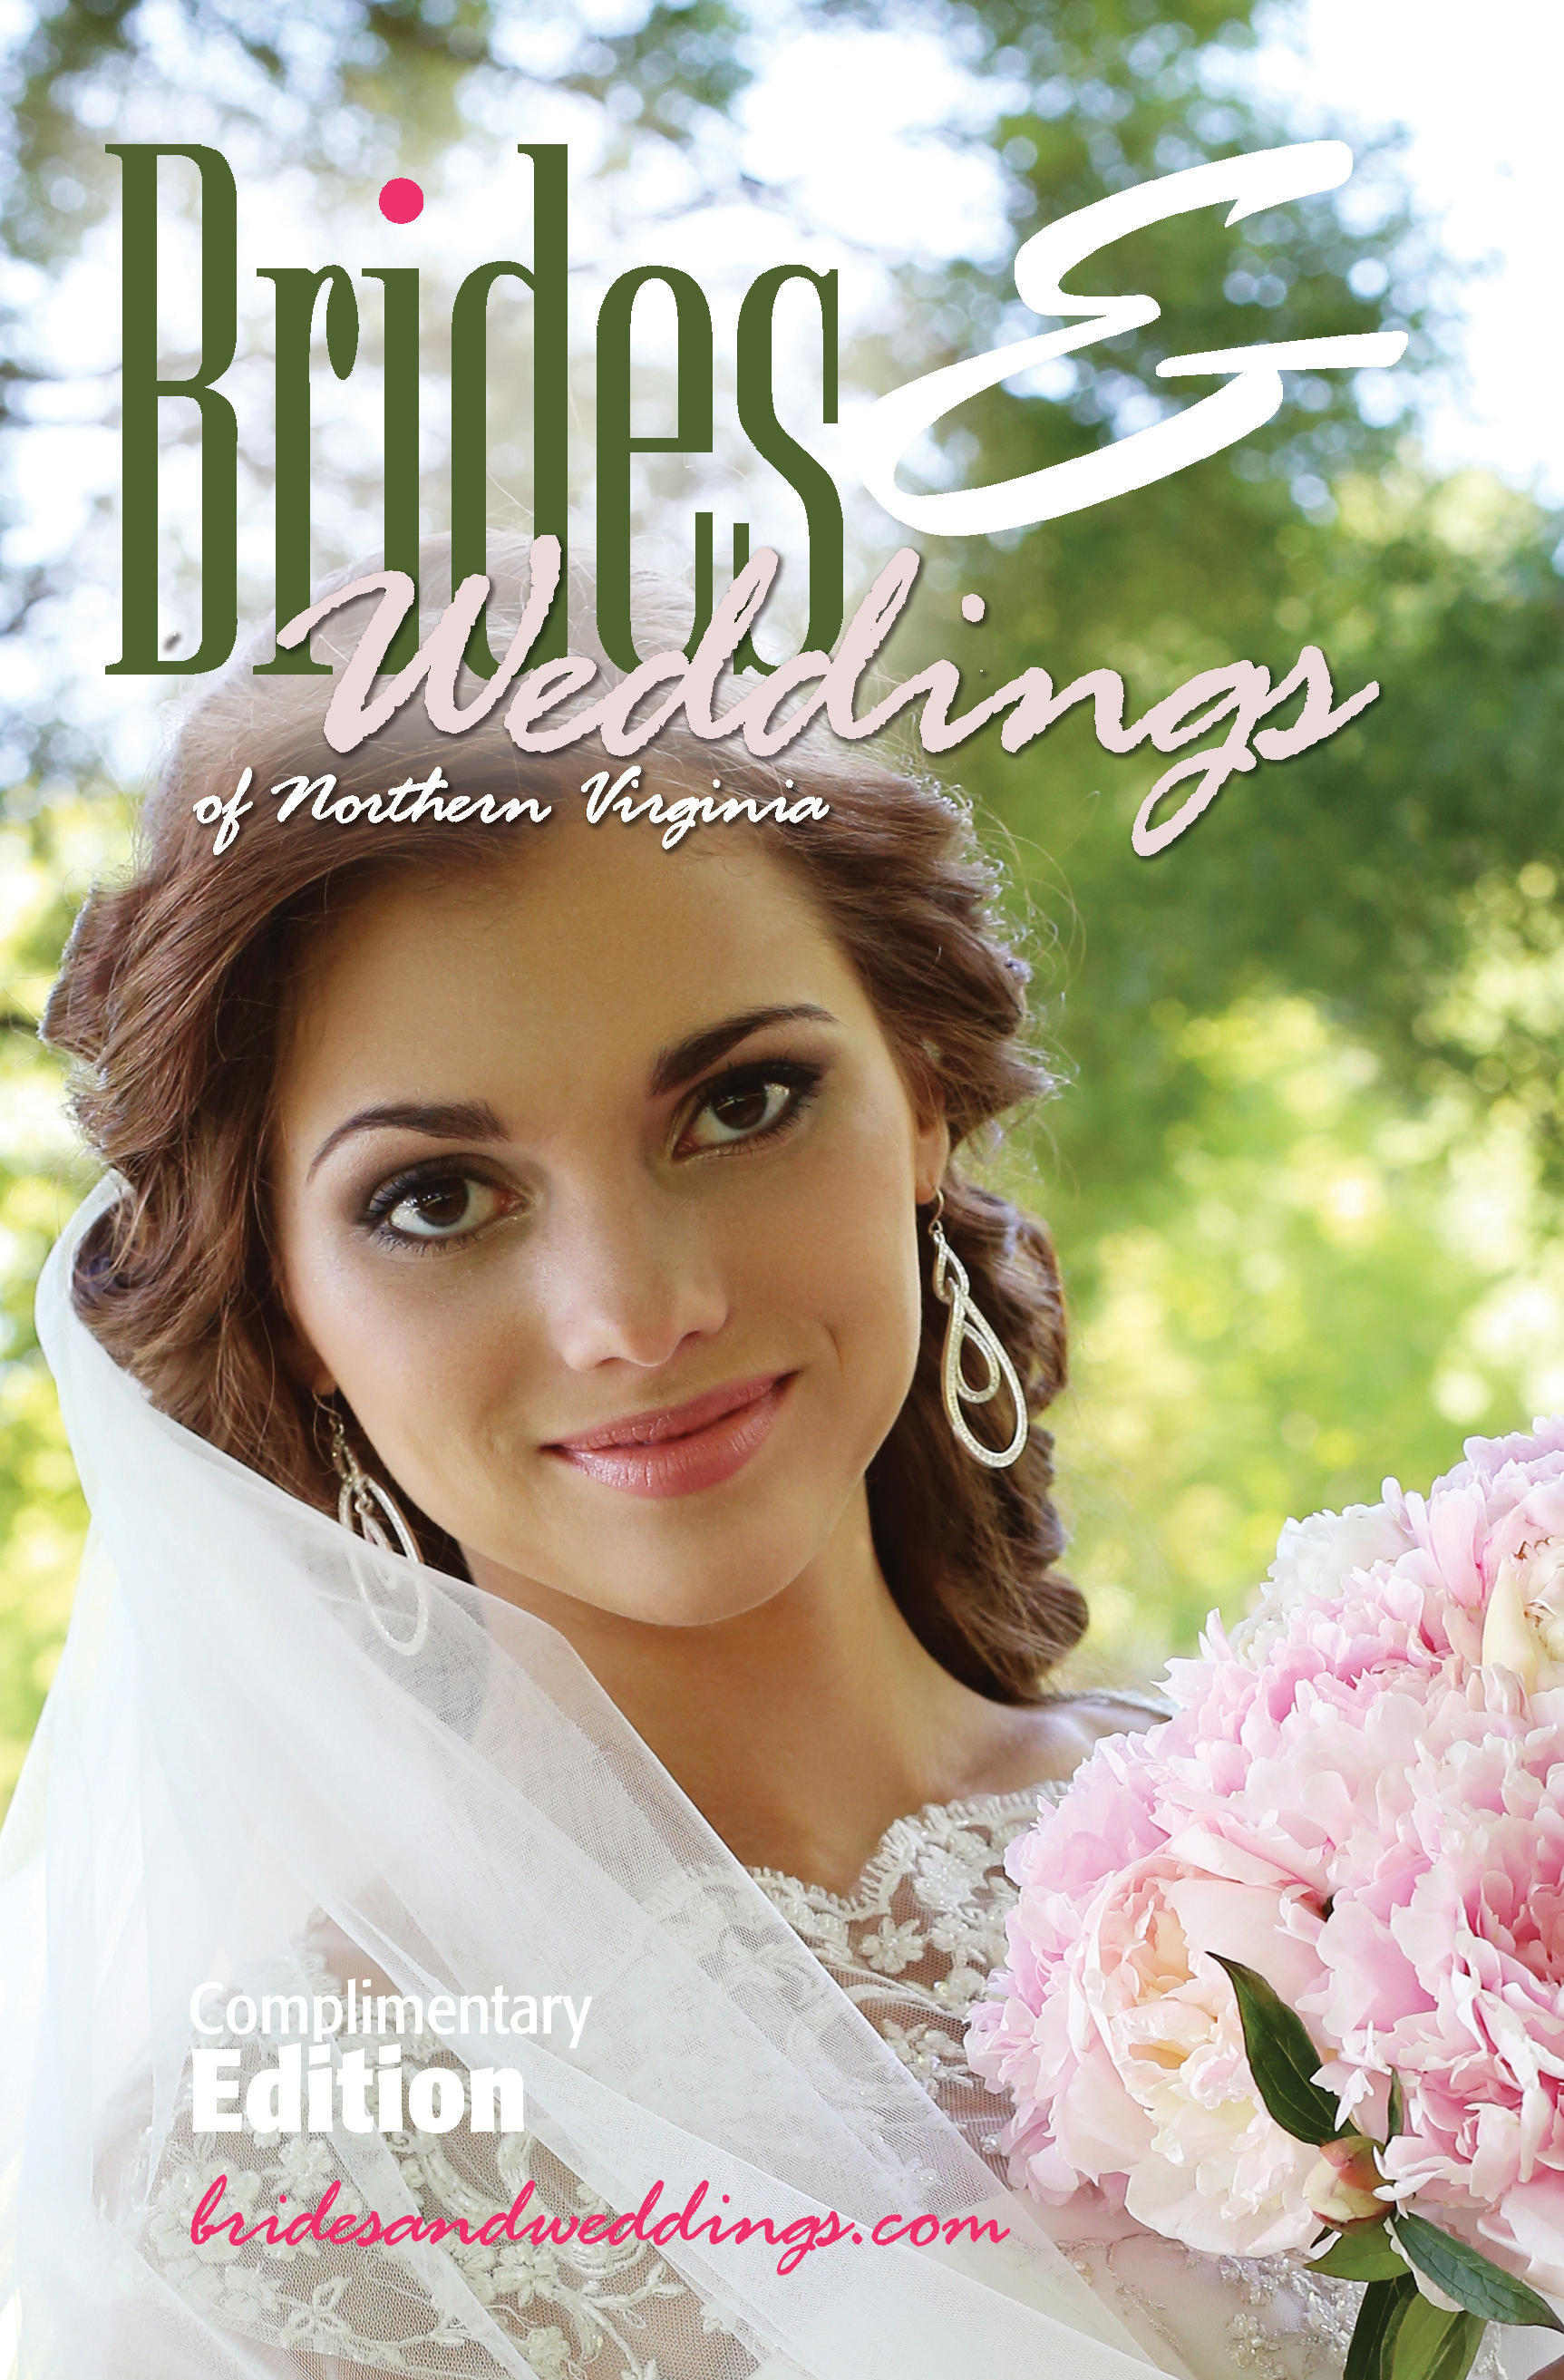 Brides & Weddings (29)